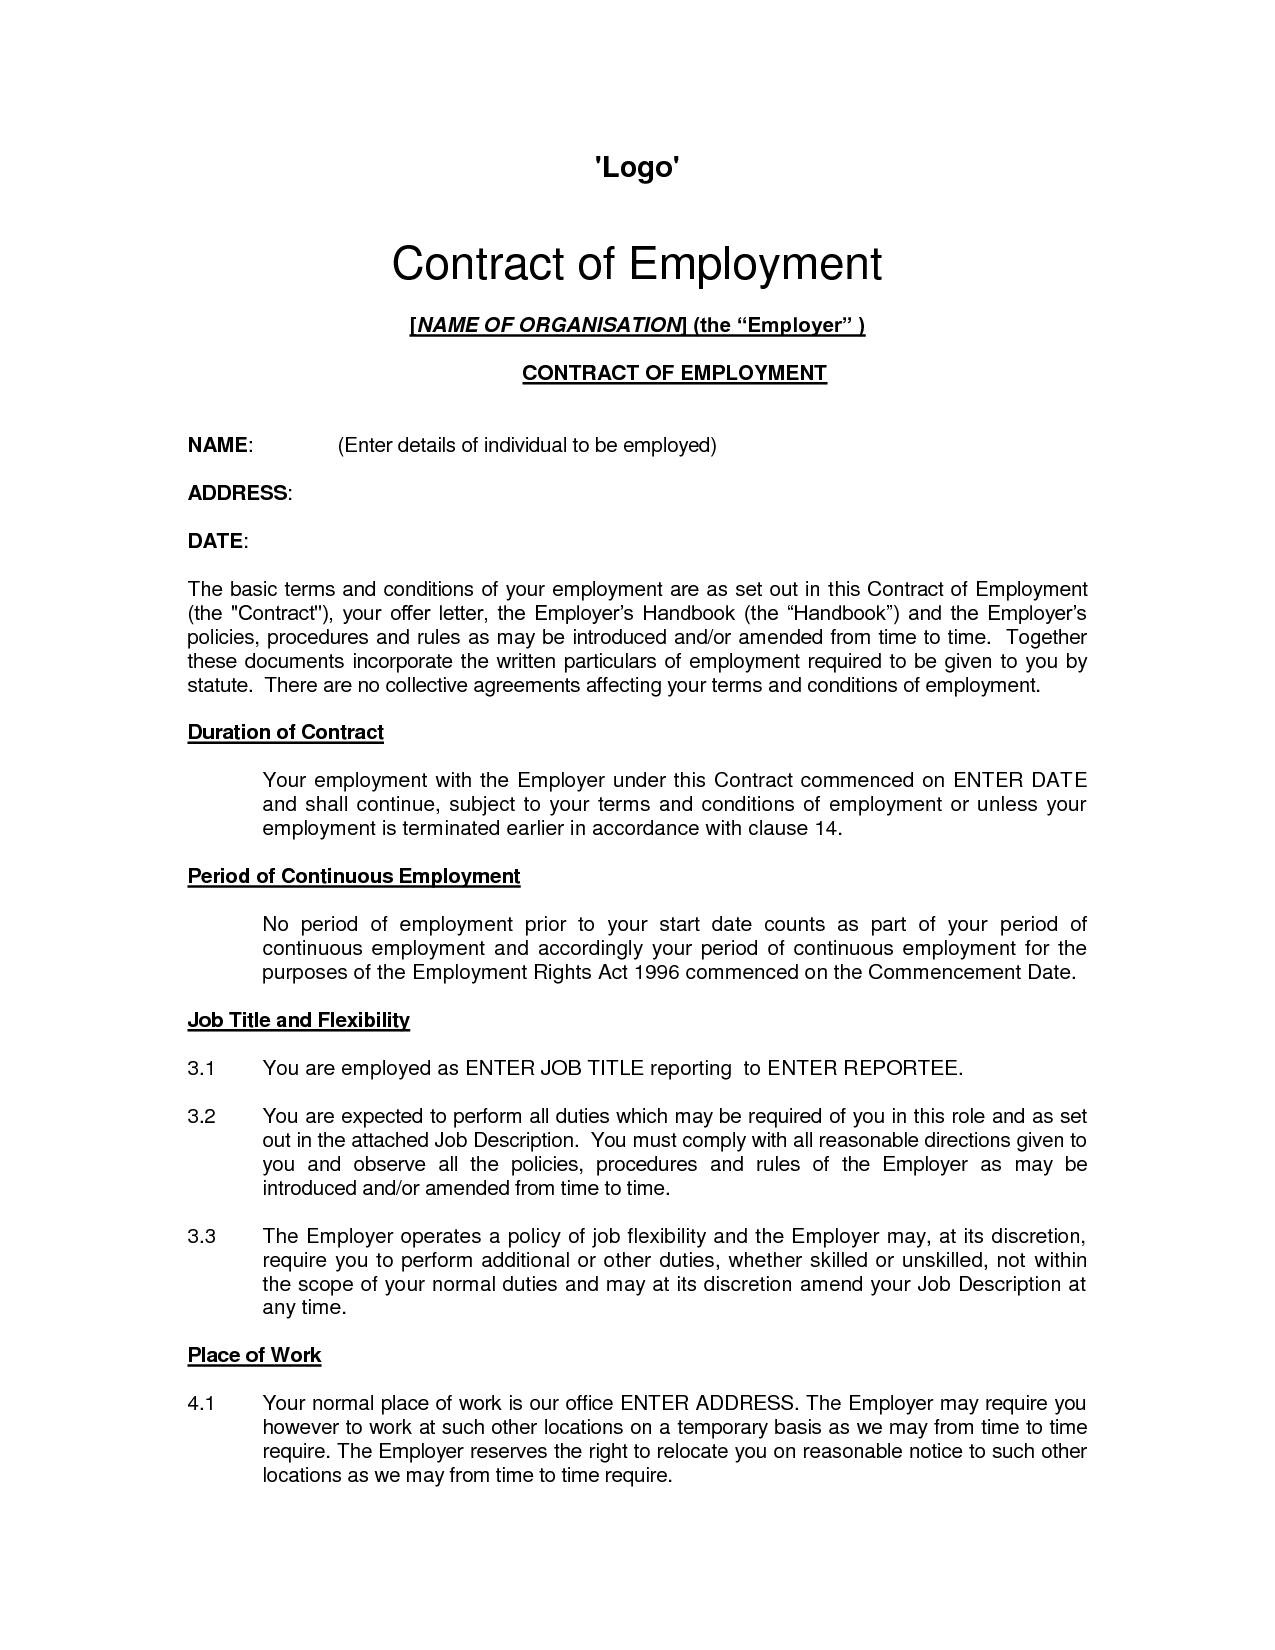 "contract of employment An employment contract is an agreement between an employer and an employer regarding the term of employment an employment contract can range from a simple handshake agreement (""the job is."